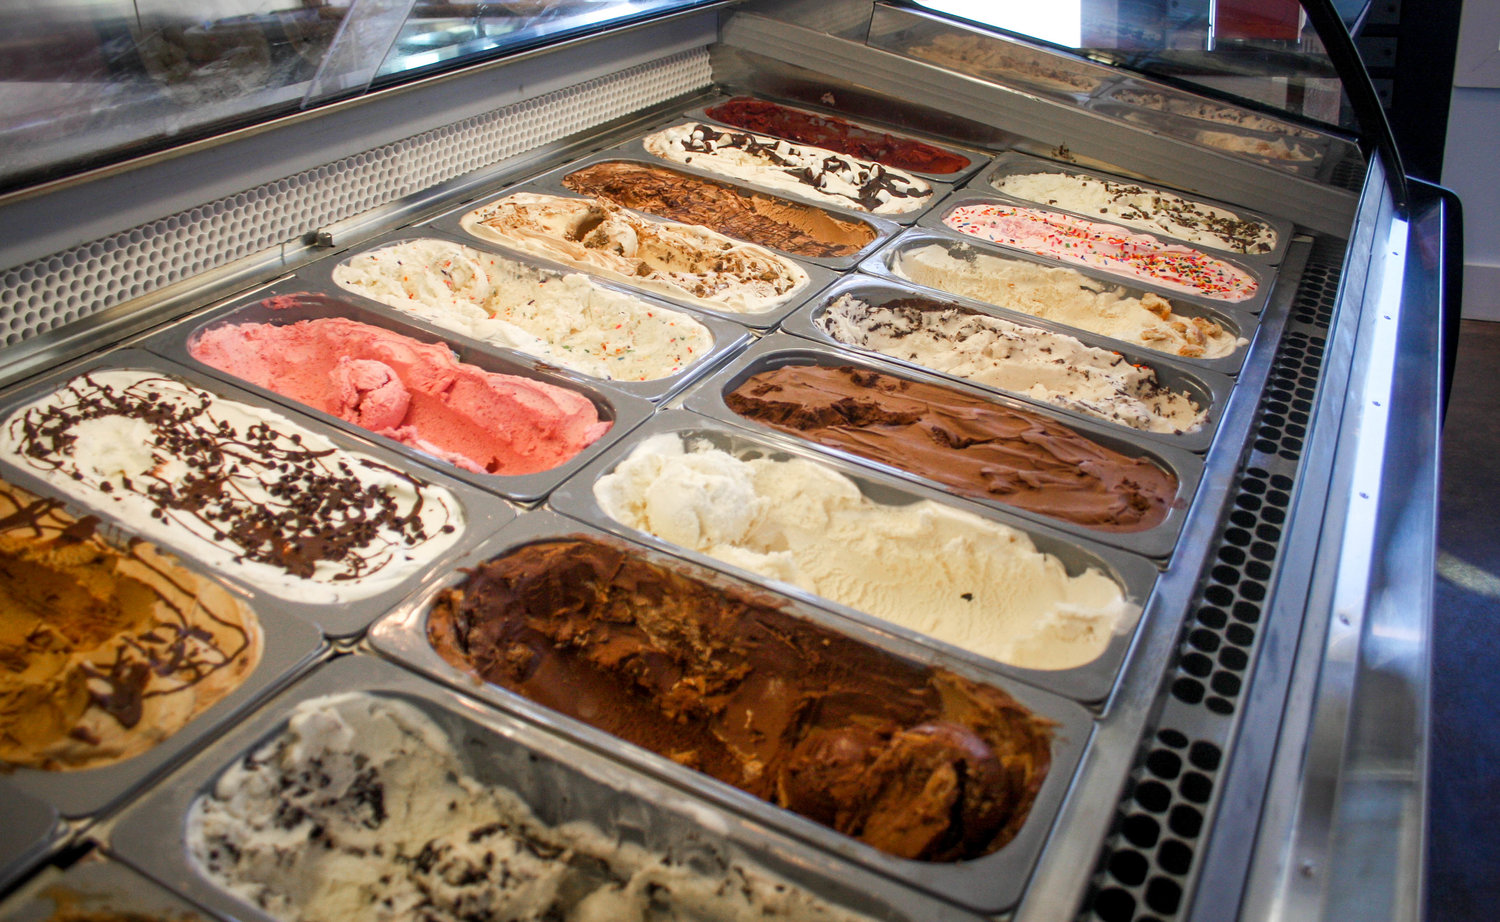 Just some of the classic flavors available at Crozet Creamery. Photo courtesy Crozet Creamery.